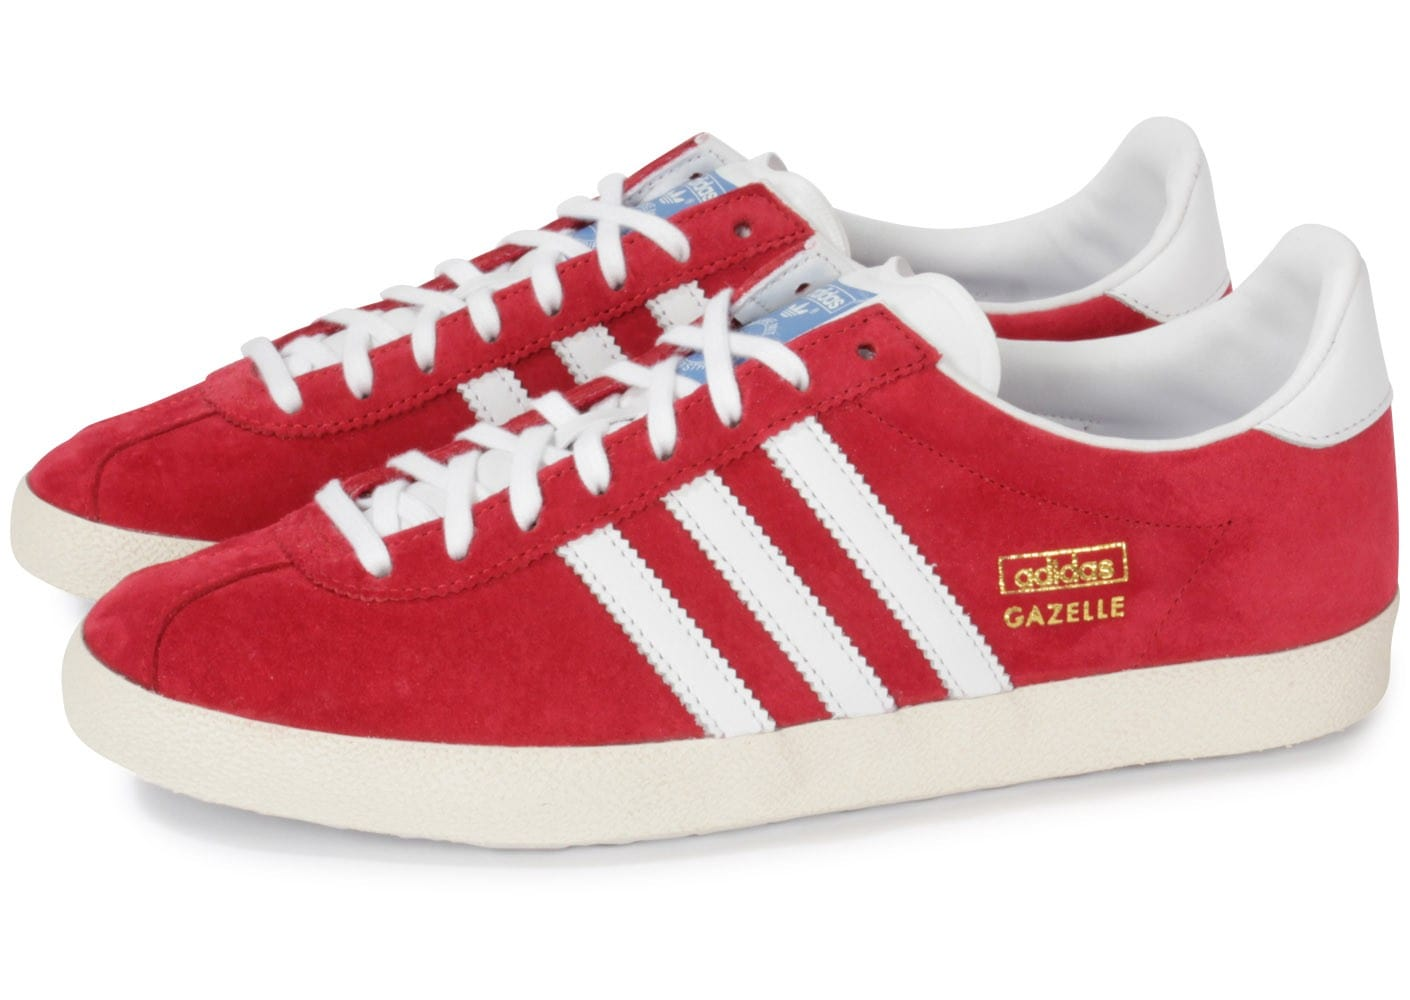 adidas Gazelle rouge Chaussures Baskets homme Chausport